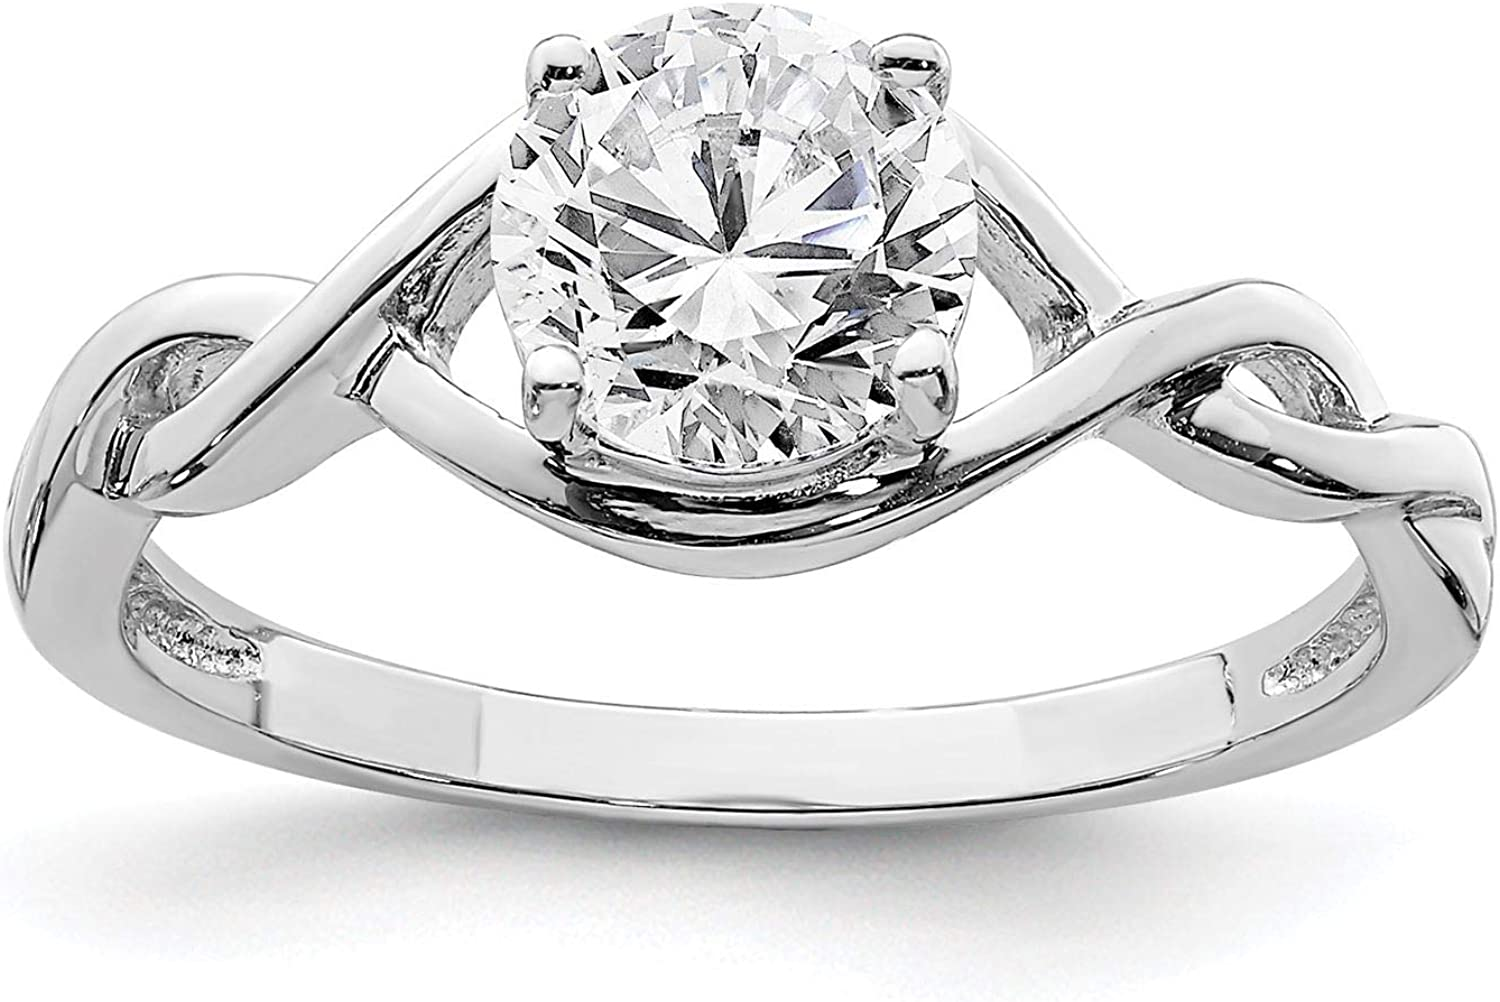 925 Sterling Silver Rhodium-plated 6.5mm CZ Twisted Engagement Ring Size 6-8